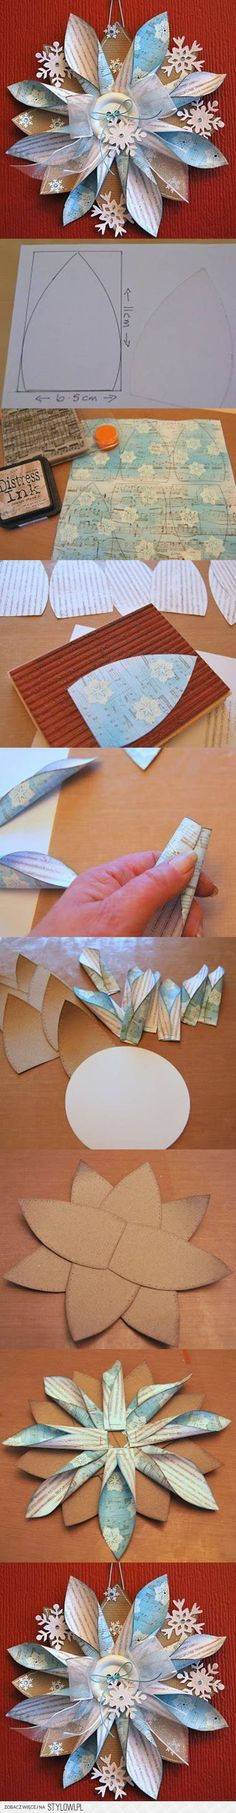 DIY Paper Ornaments diy craft crafts christmas diy crafts how to tutorial origami winter crafts christmas crafts Handmade Flowers, Diy Flowers, Fabric Flowers, Paper Flowers, White Flowers, Christmas Projects, Holiday Crafts, Christmas Holidays, Christmas Star